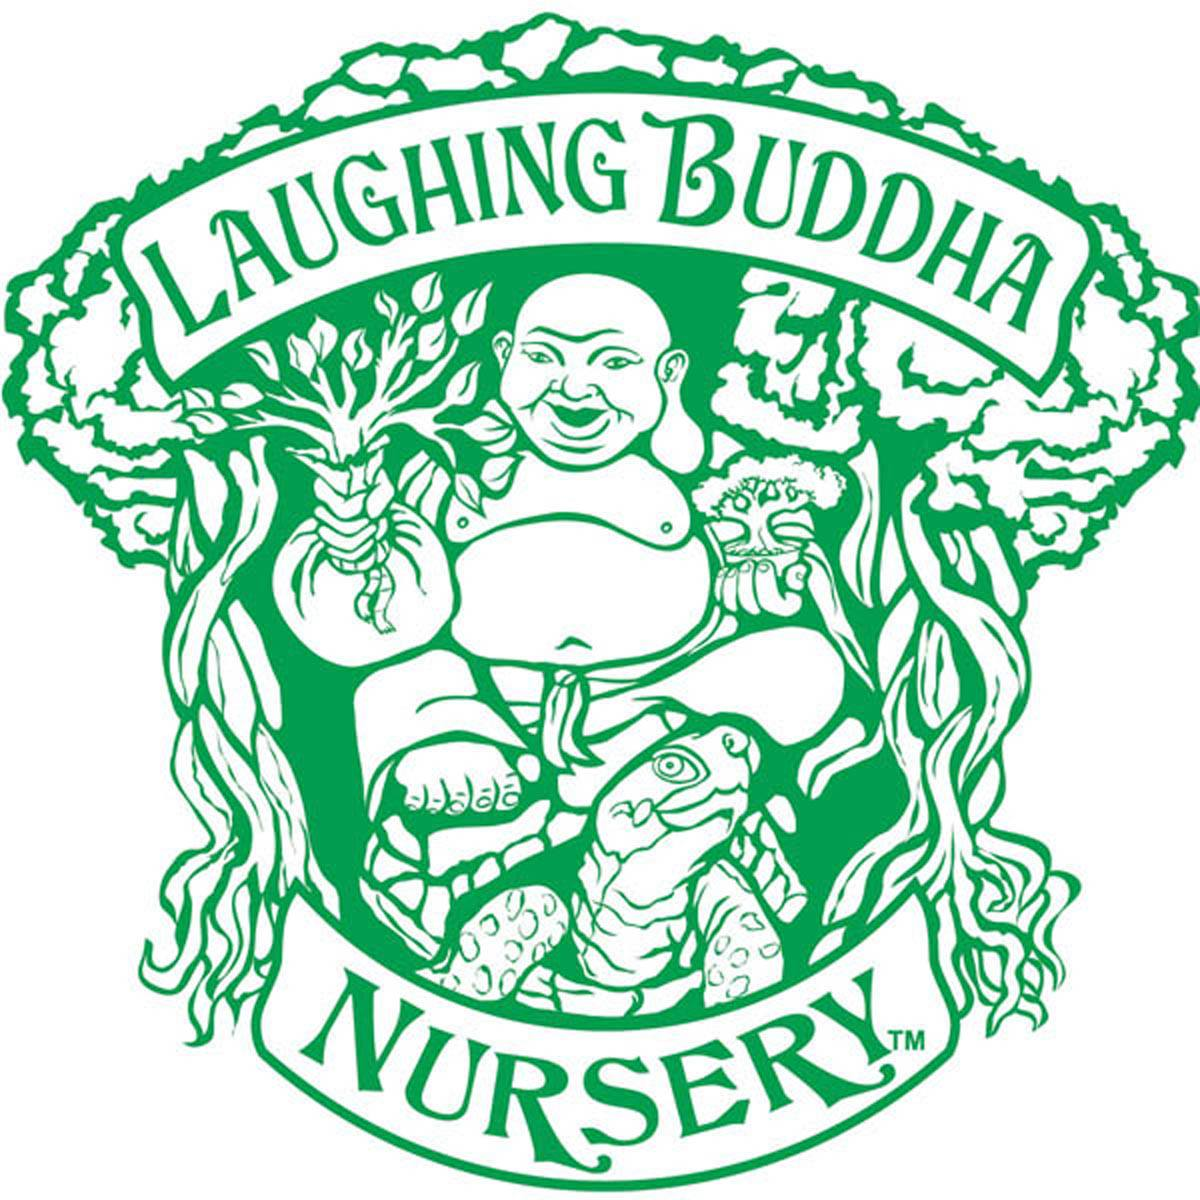 Laughing Buddha Nursery